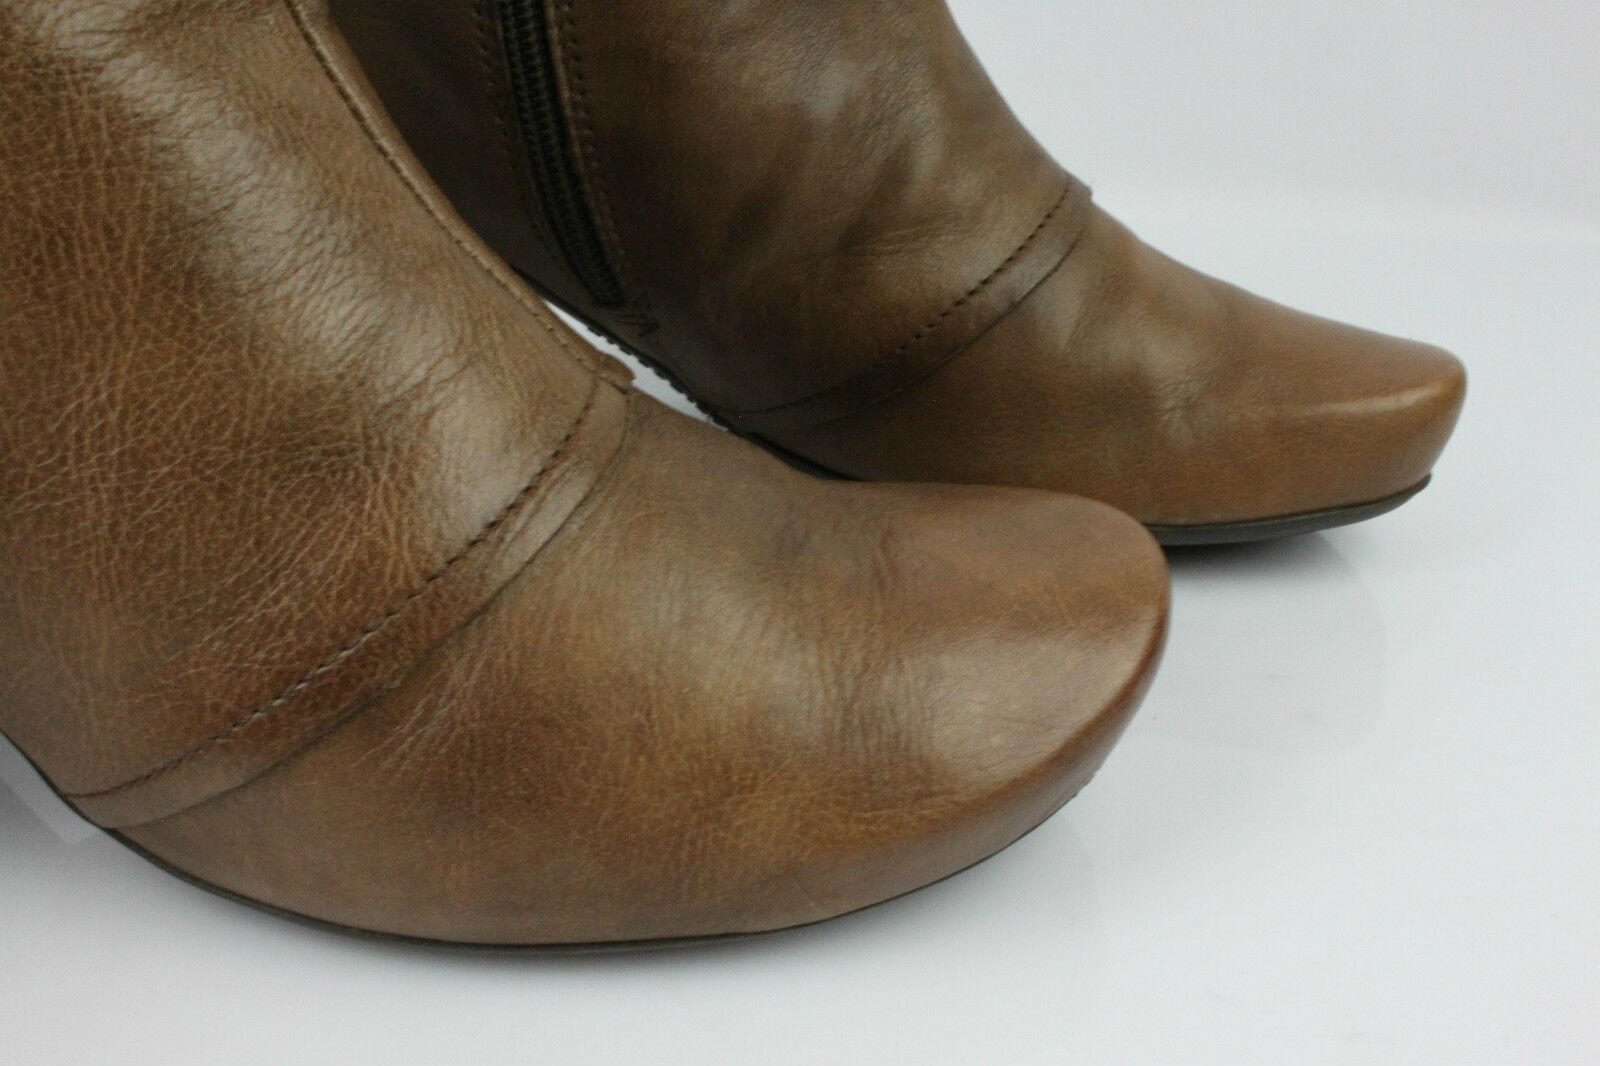 Boots HISPANITAS HISPANITAS HISPANITAS Brown Leather Clear T 37 VERY GOOD CONDITION 7657a4